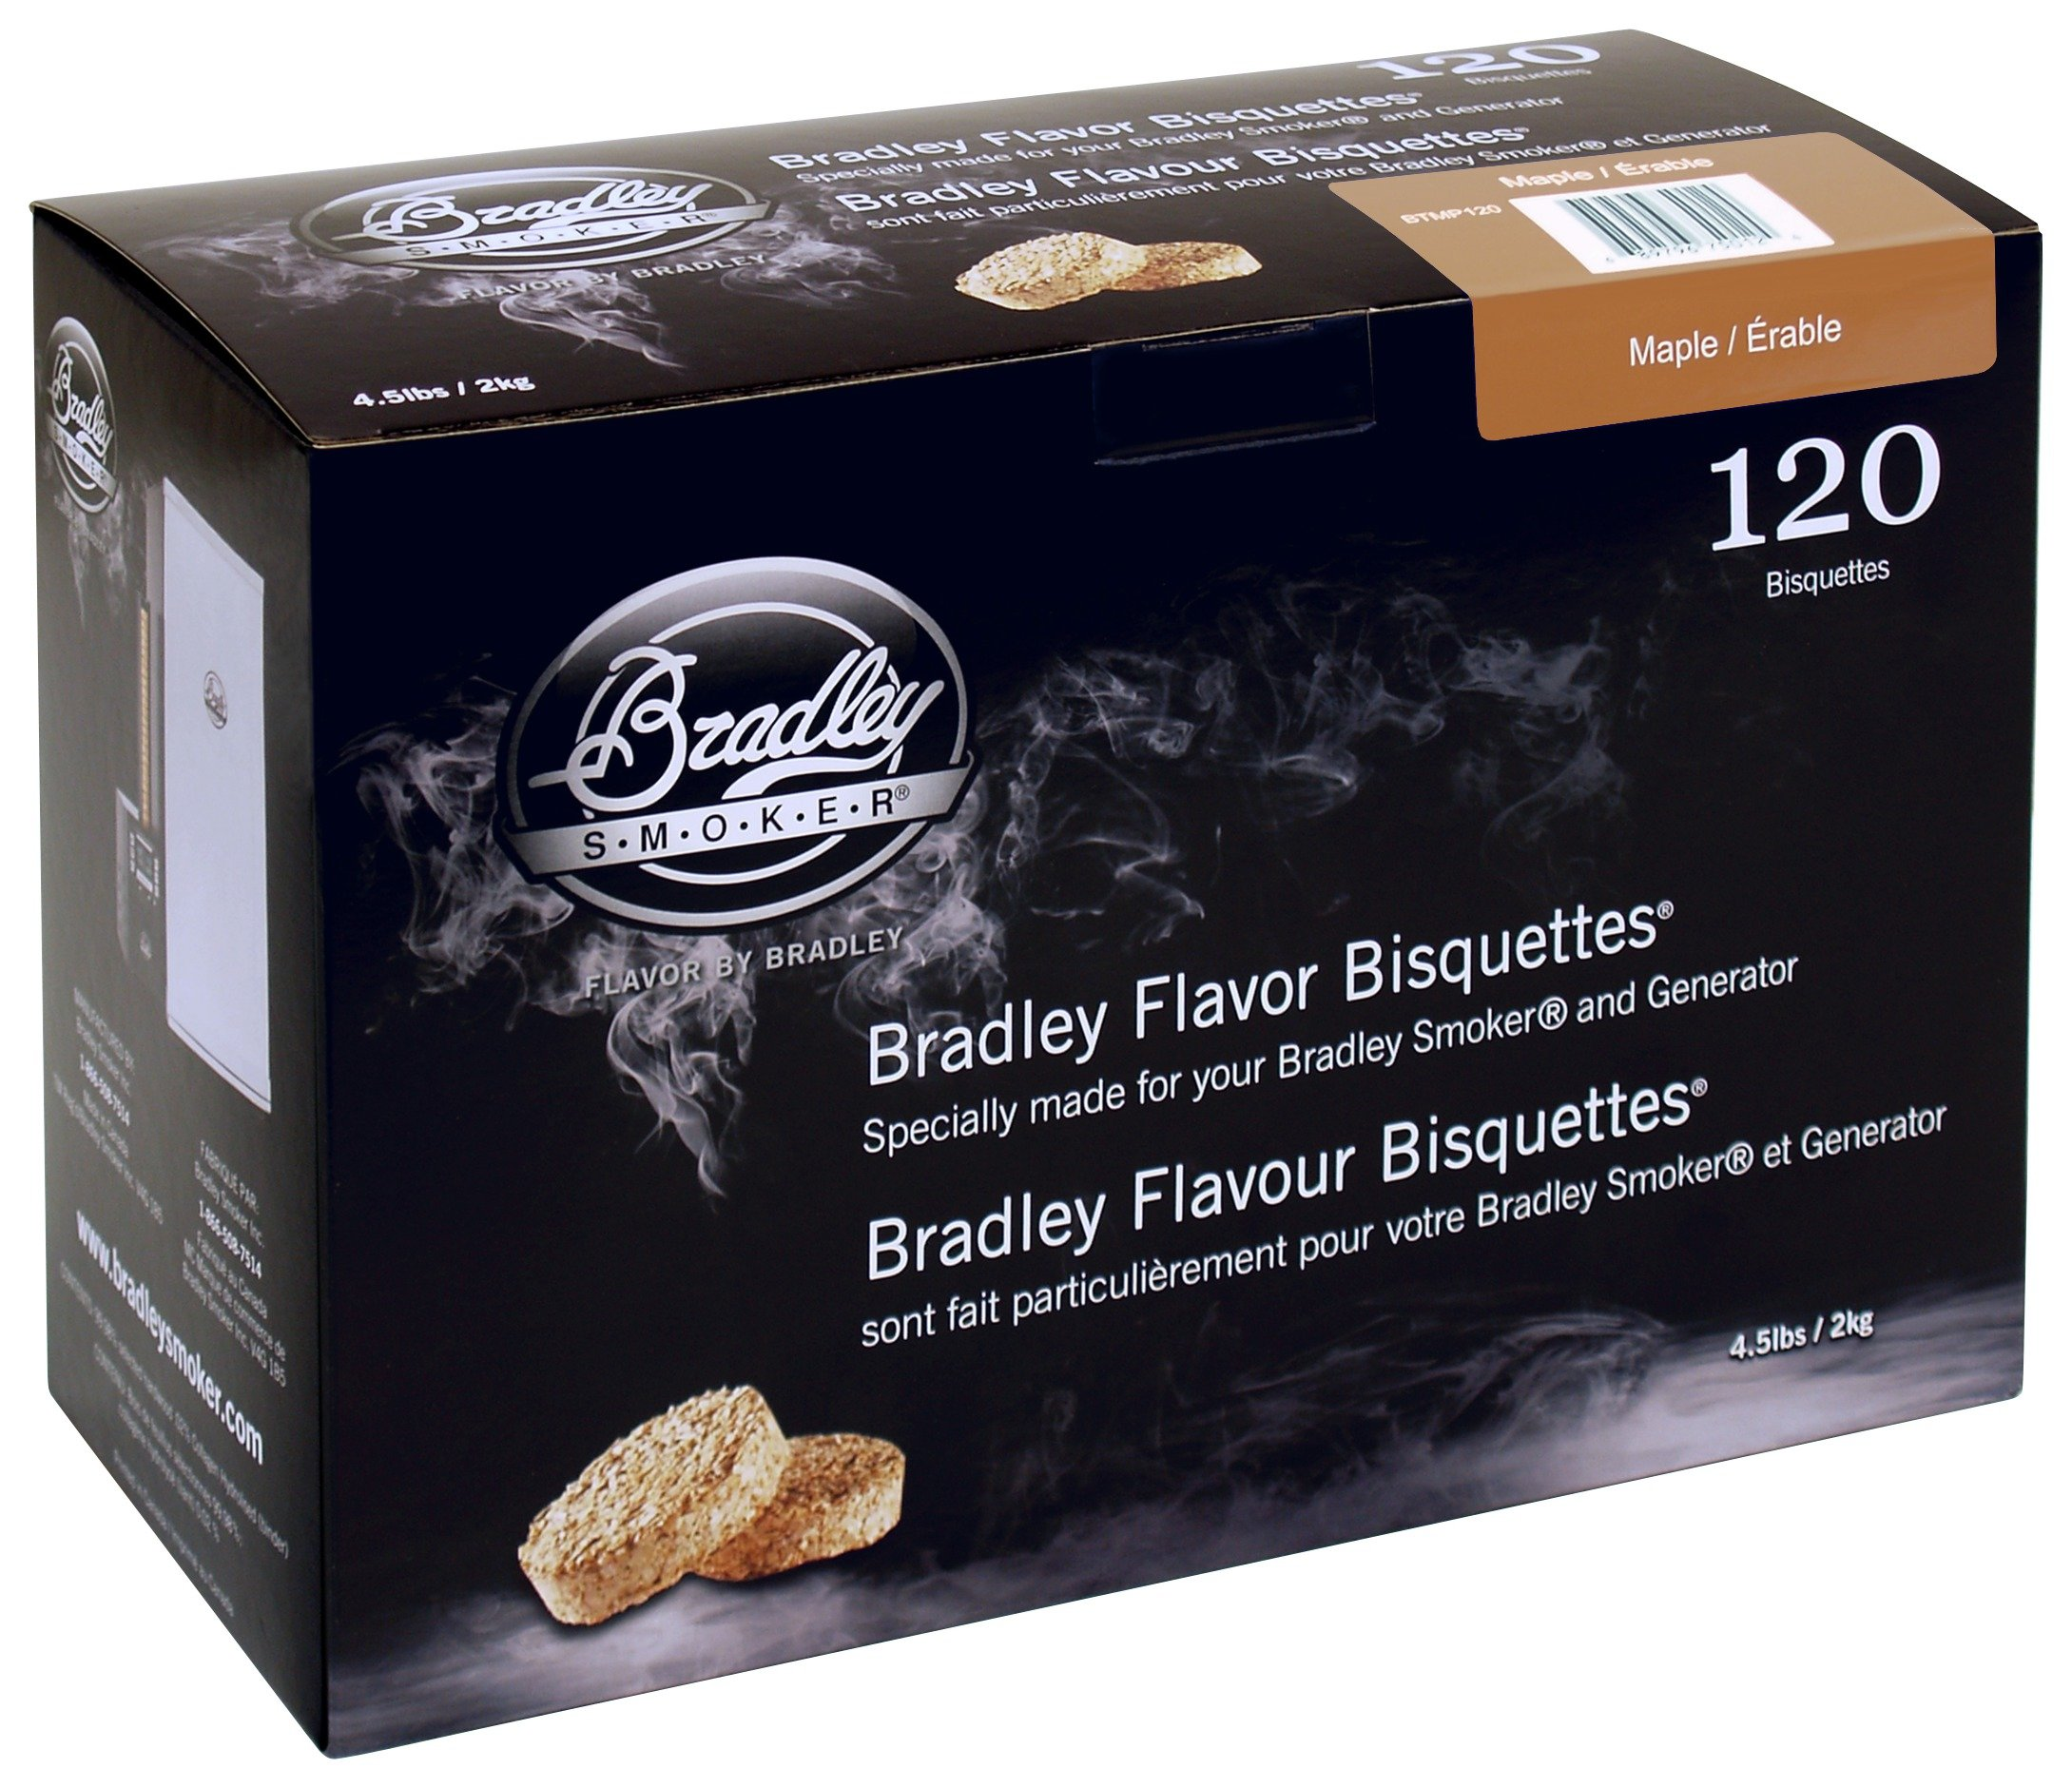 Image of Bradley Smoker - Maple Bisquettes - 120 Pack